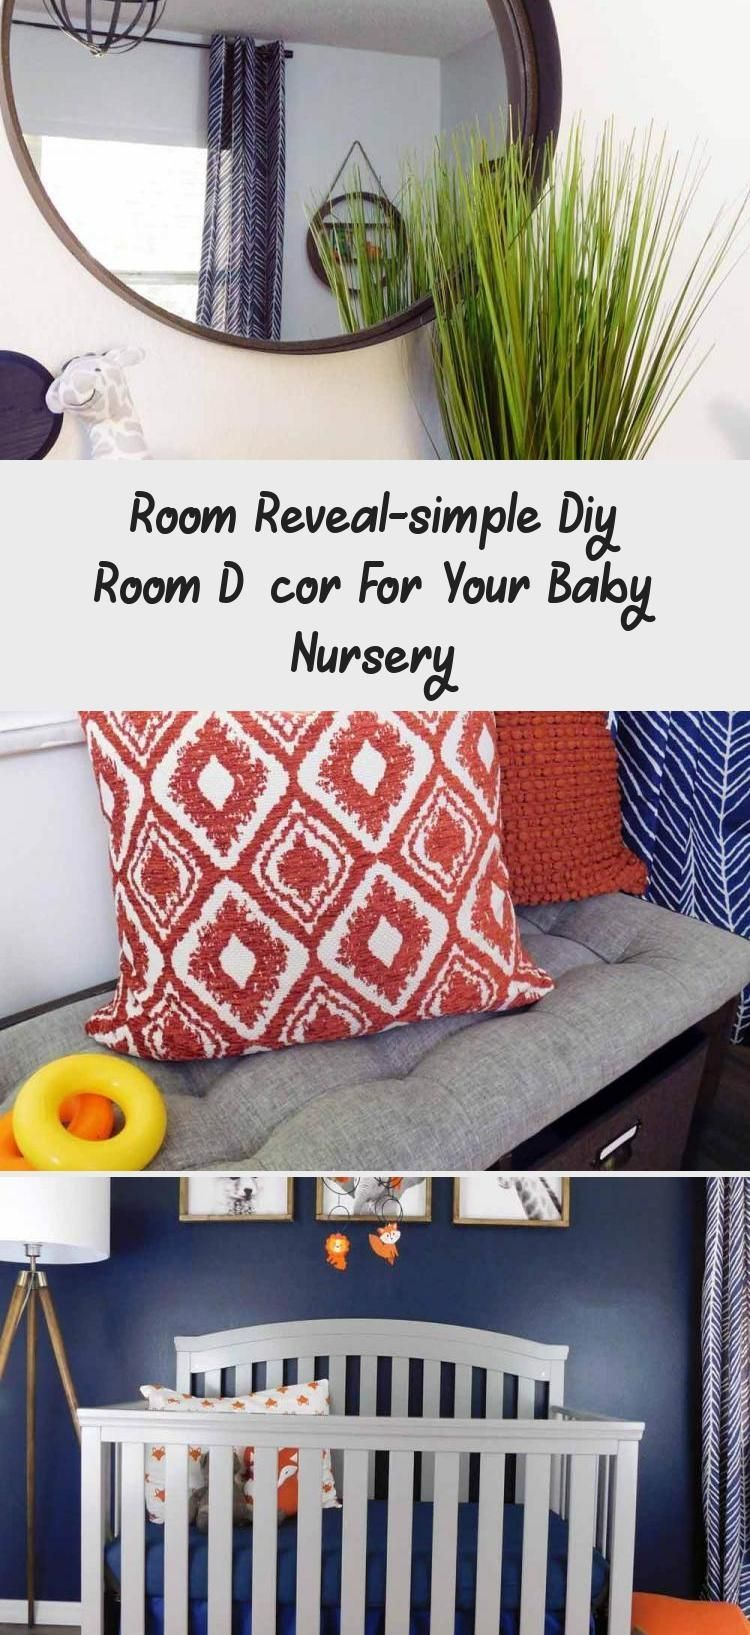 Room Reveal-simple Diy Room Décor For Your Baby Nursery - health and diet fitness  Simple DIY baby n...